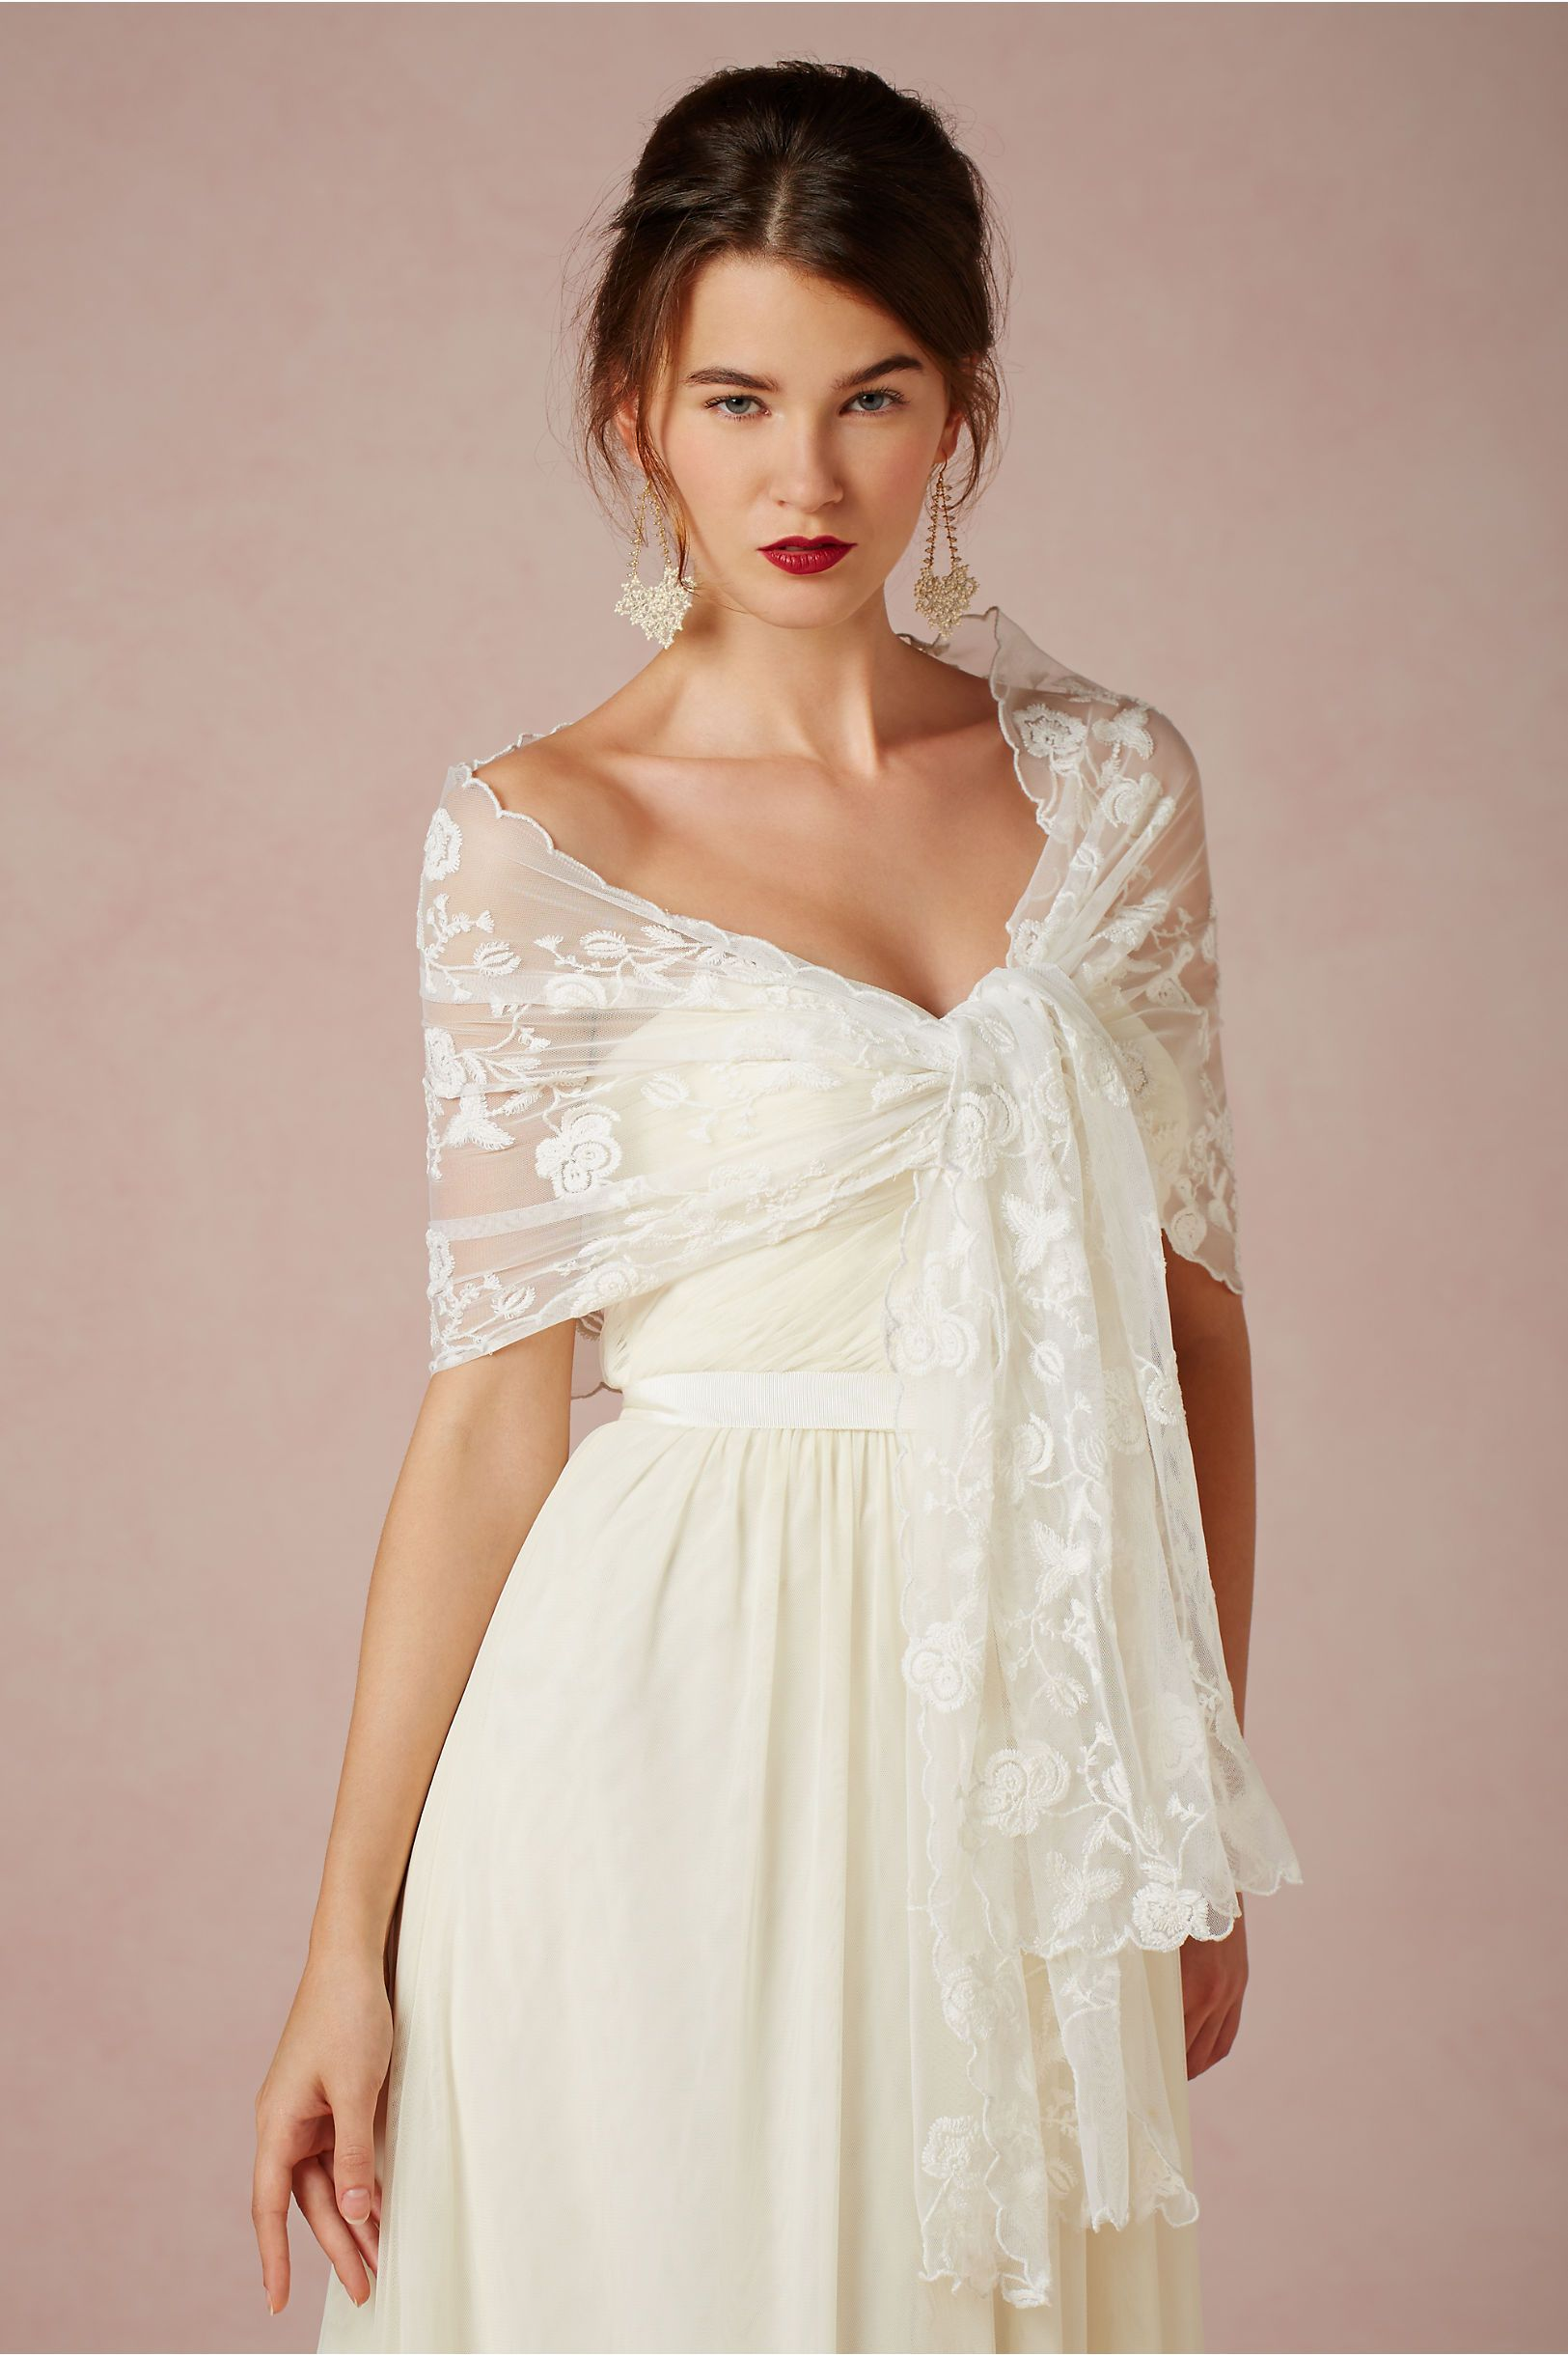 Wedding dress wrap  Nicolette Wrap in Shoes u Accessories Cover Ups at BHLDN